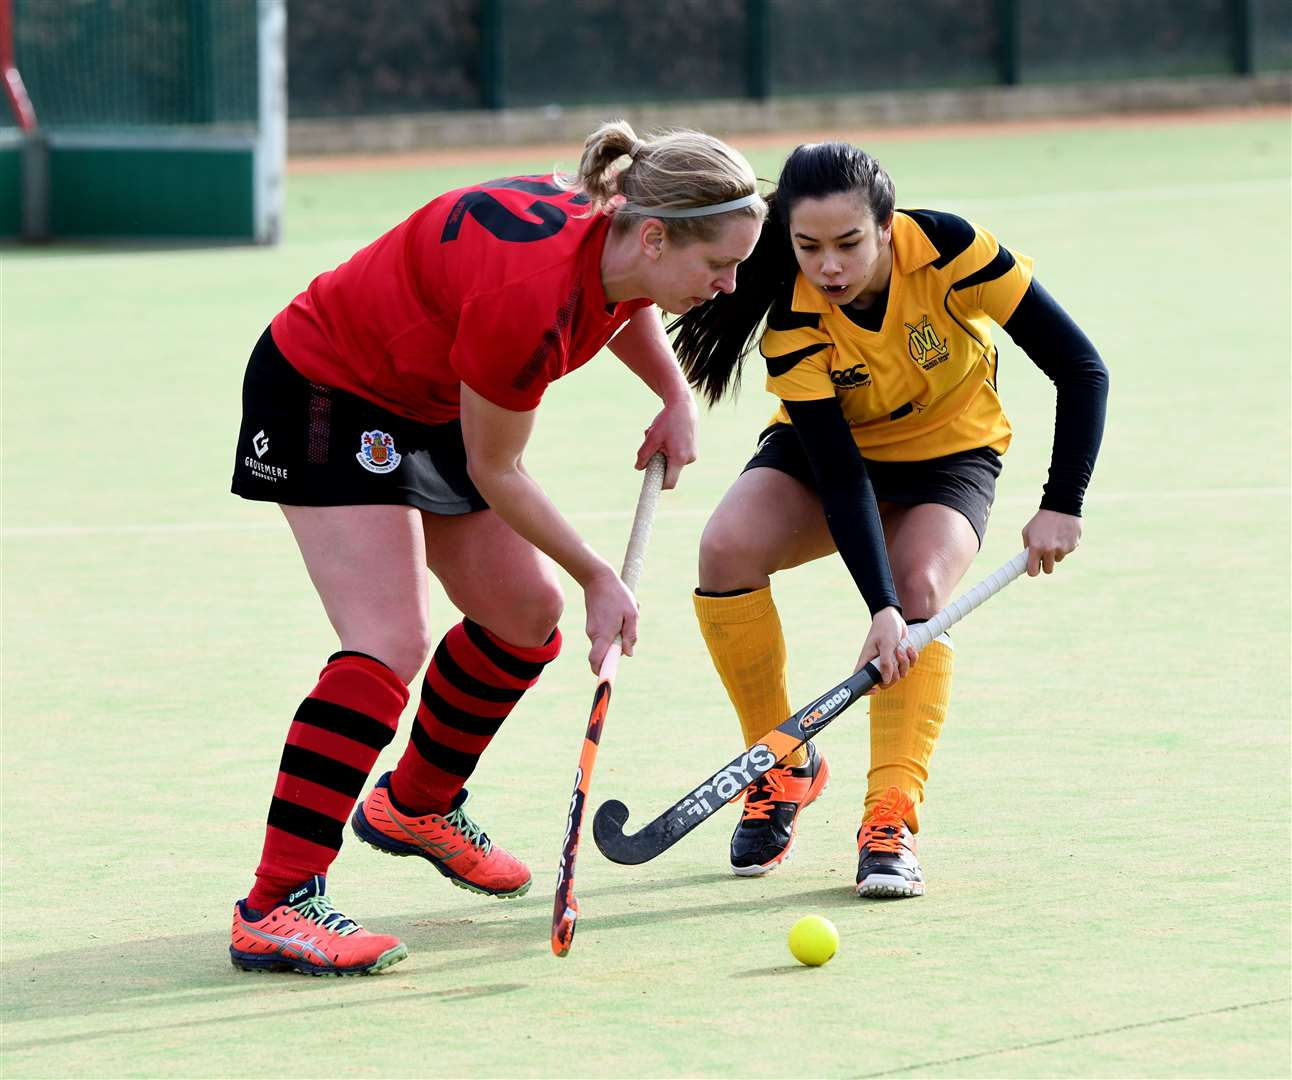 Wisbech Ladies 2nds v March 1st Hockey. (28777771)